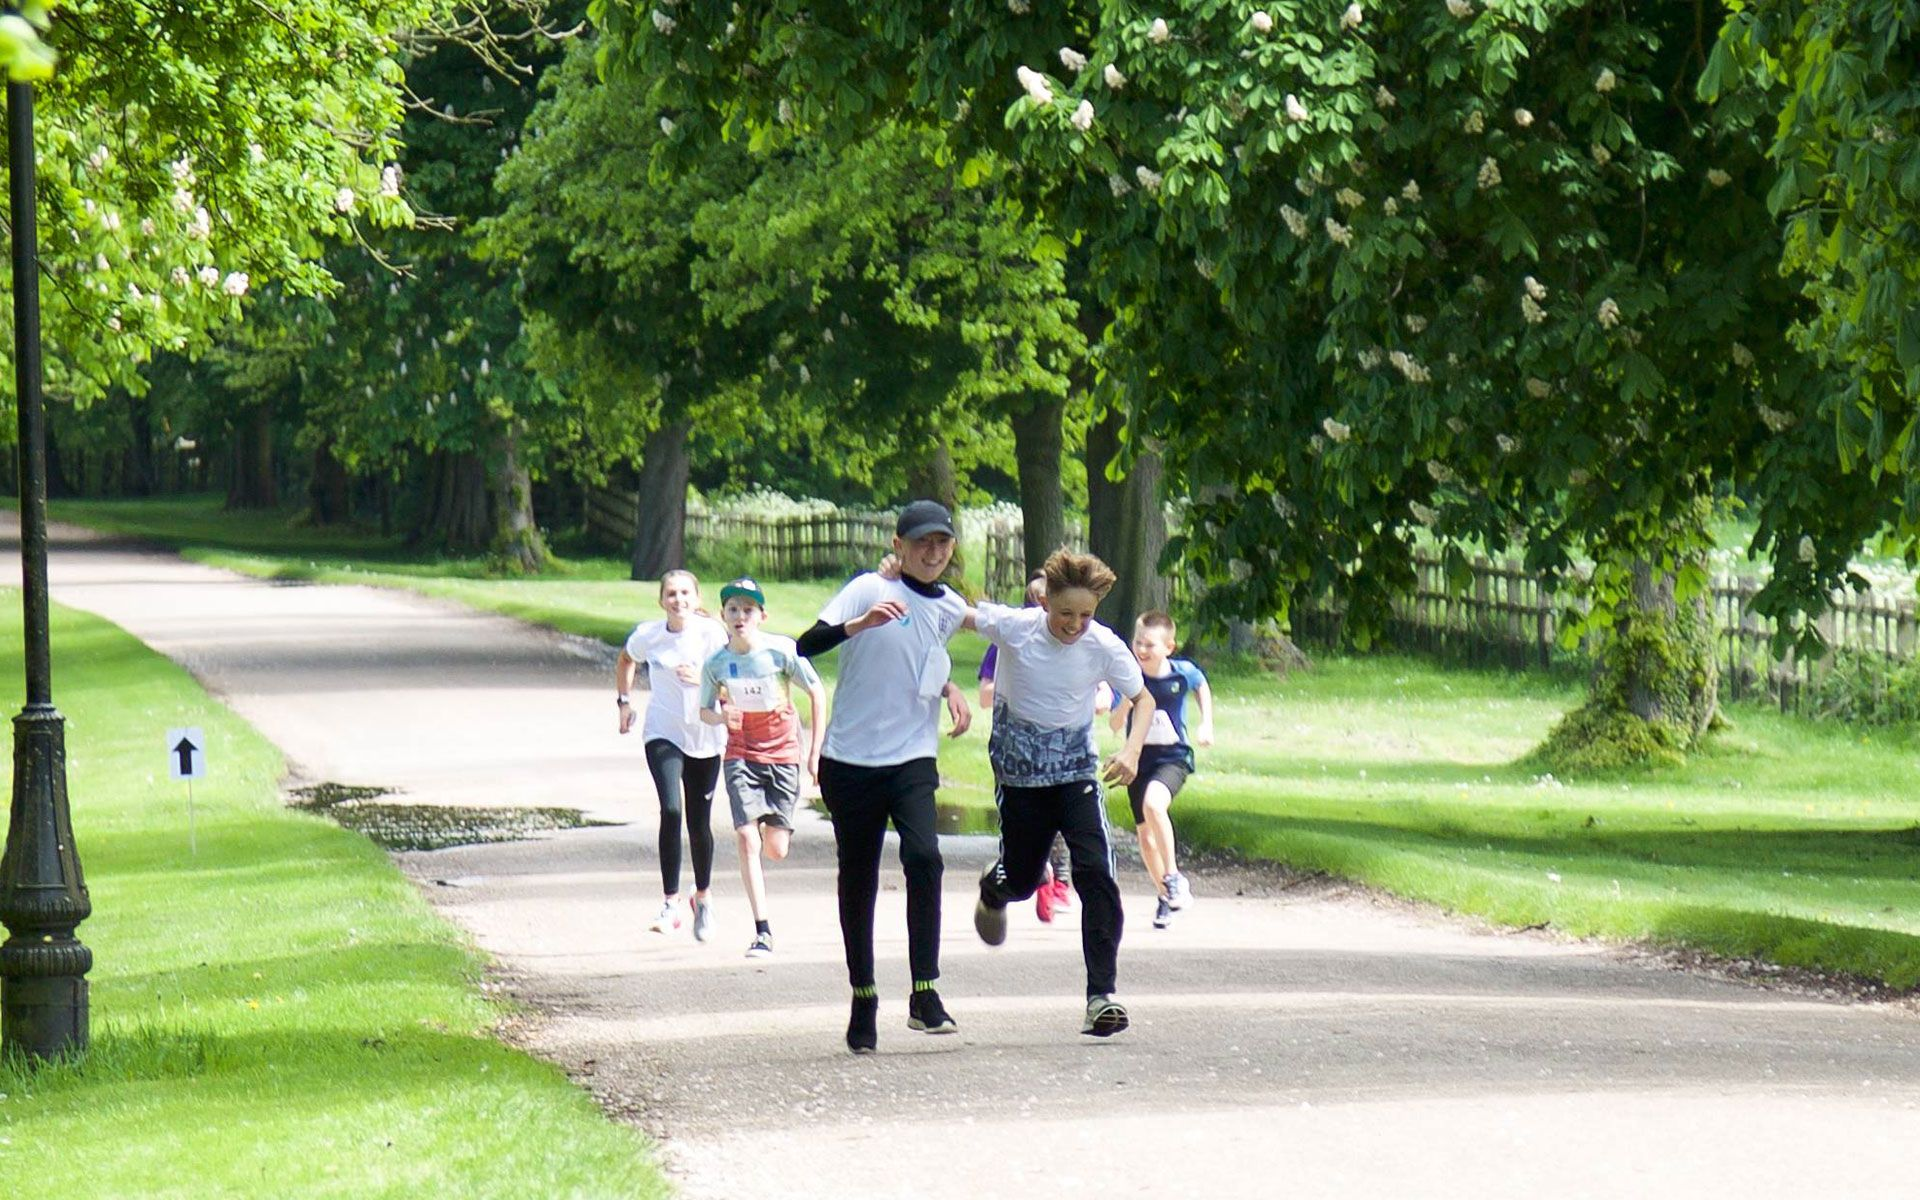 Each year the charity holds a 10K fun run/walk around the Welbeck Estate.